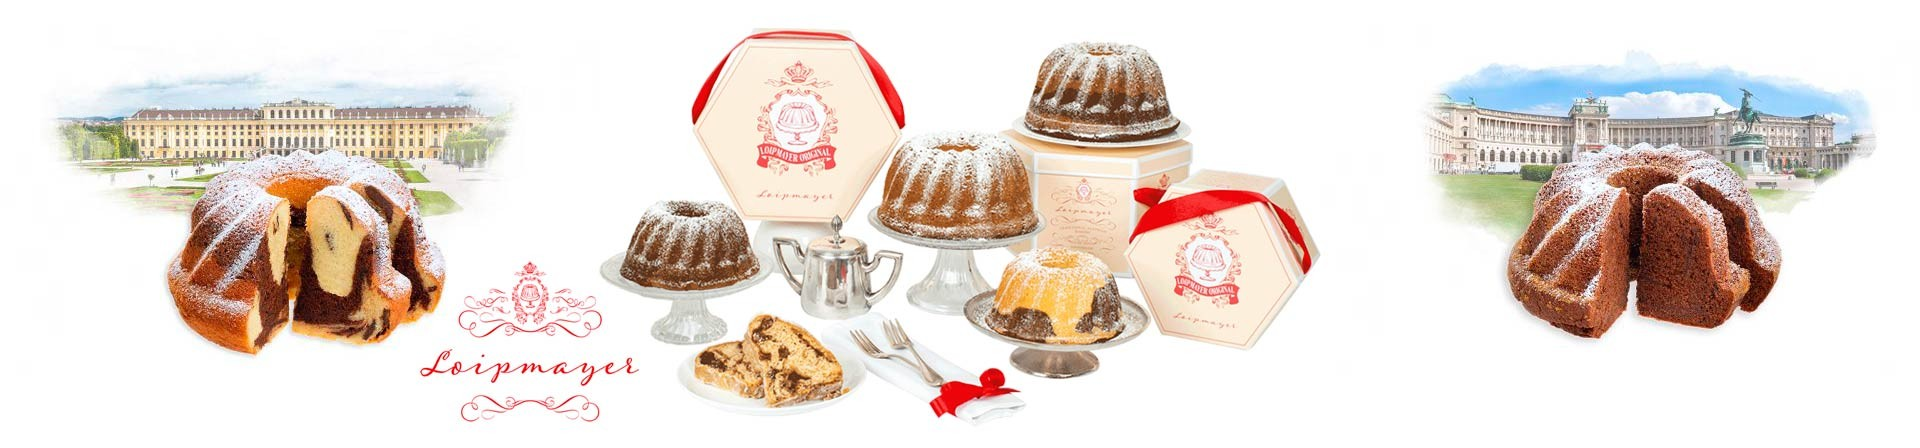 """""""Loipmayer Original"""" stands for high-quality, handcrafted bakery art from Austria."""